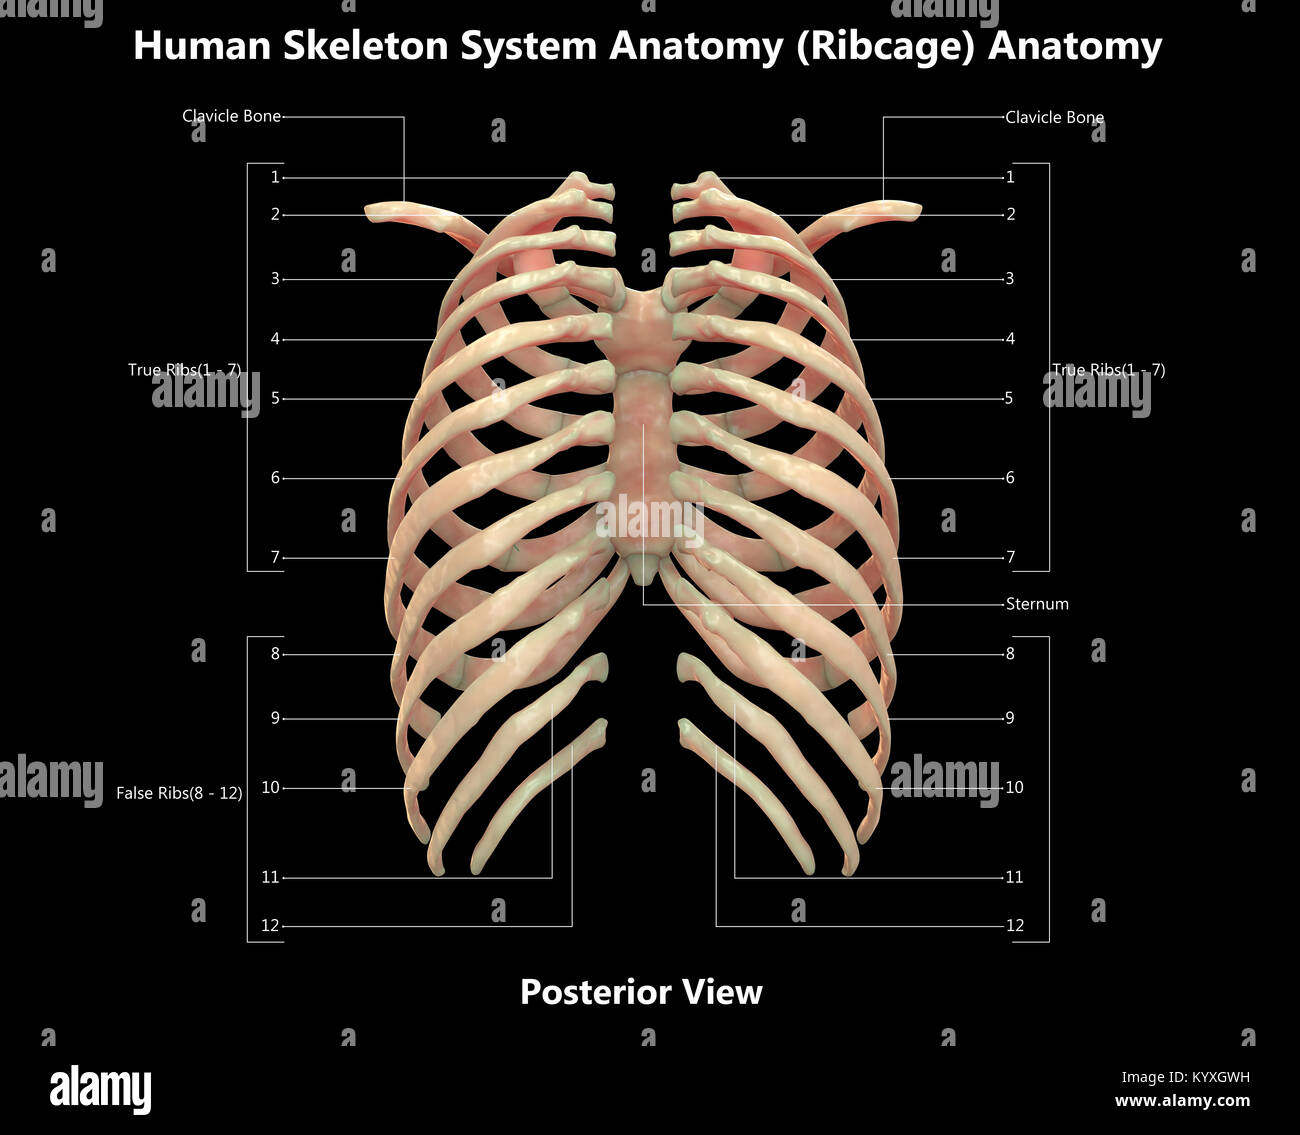 Human Skeleton System Rib Cage Label Design Posterior View Anatomy ...